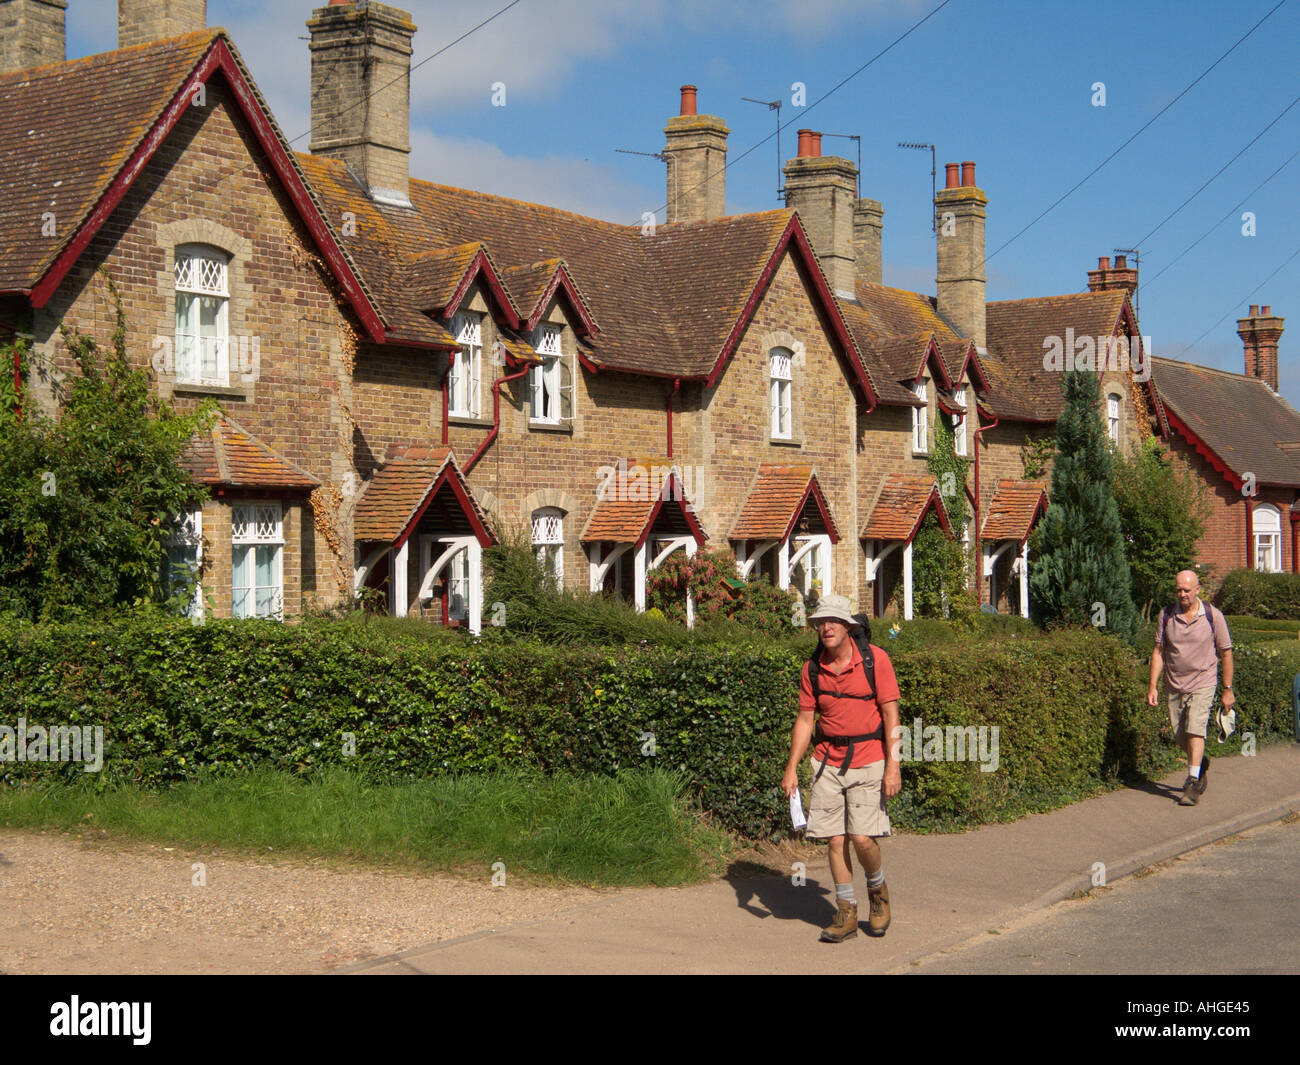 Country Village Walks and Walking Widows Cottages Somerleyton Suffolk England GB - Stock Image